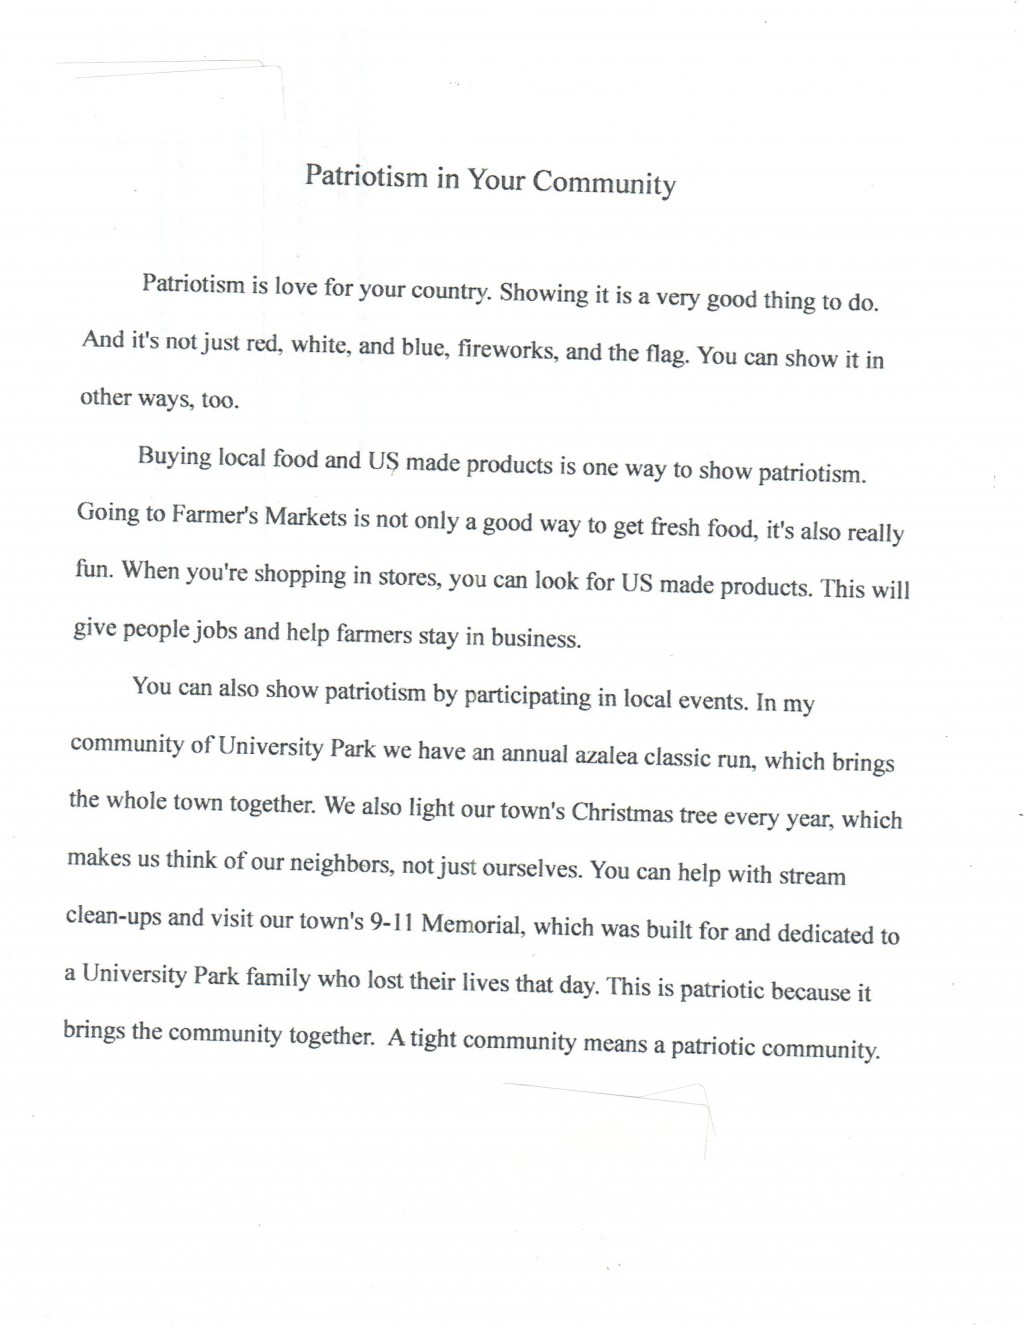 009 Americanism Essay Contest Example Astounding Amvets 2017 For Grades 7–12 Education Leaders Large